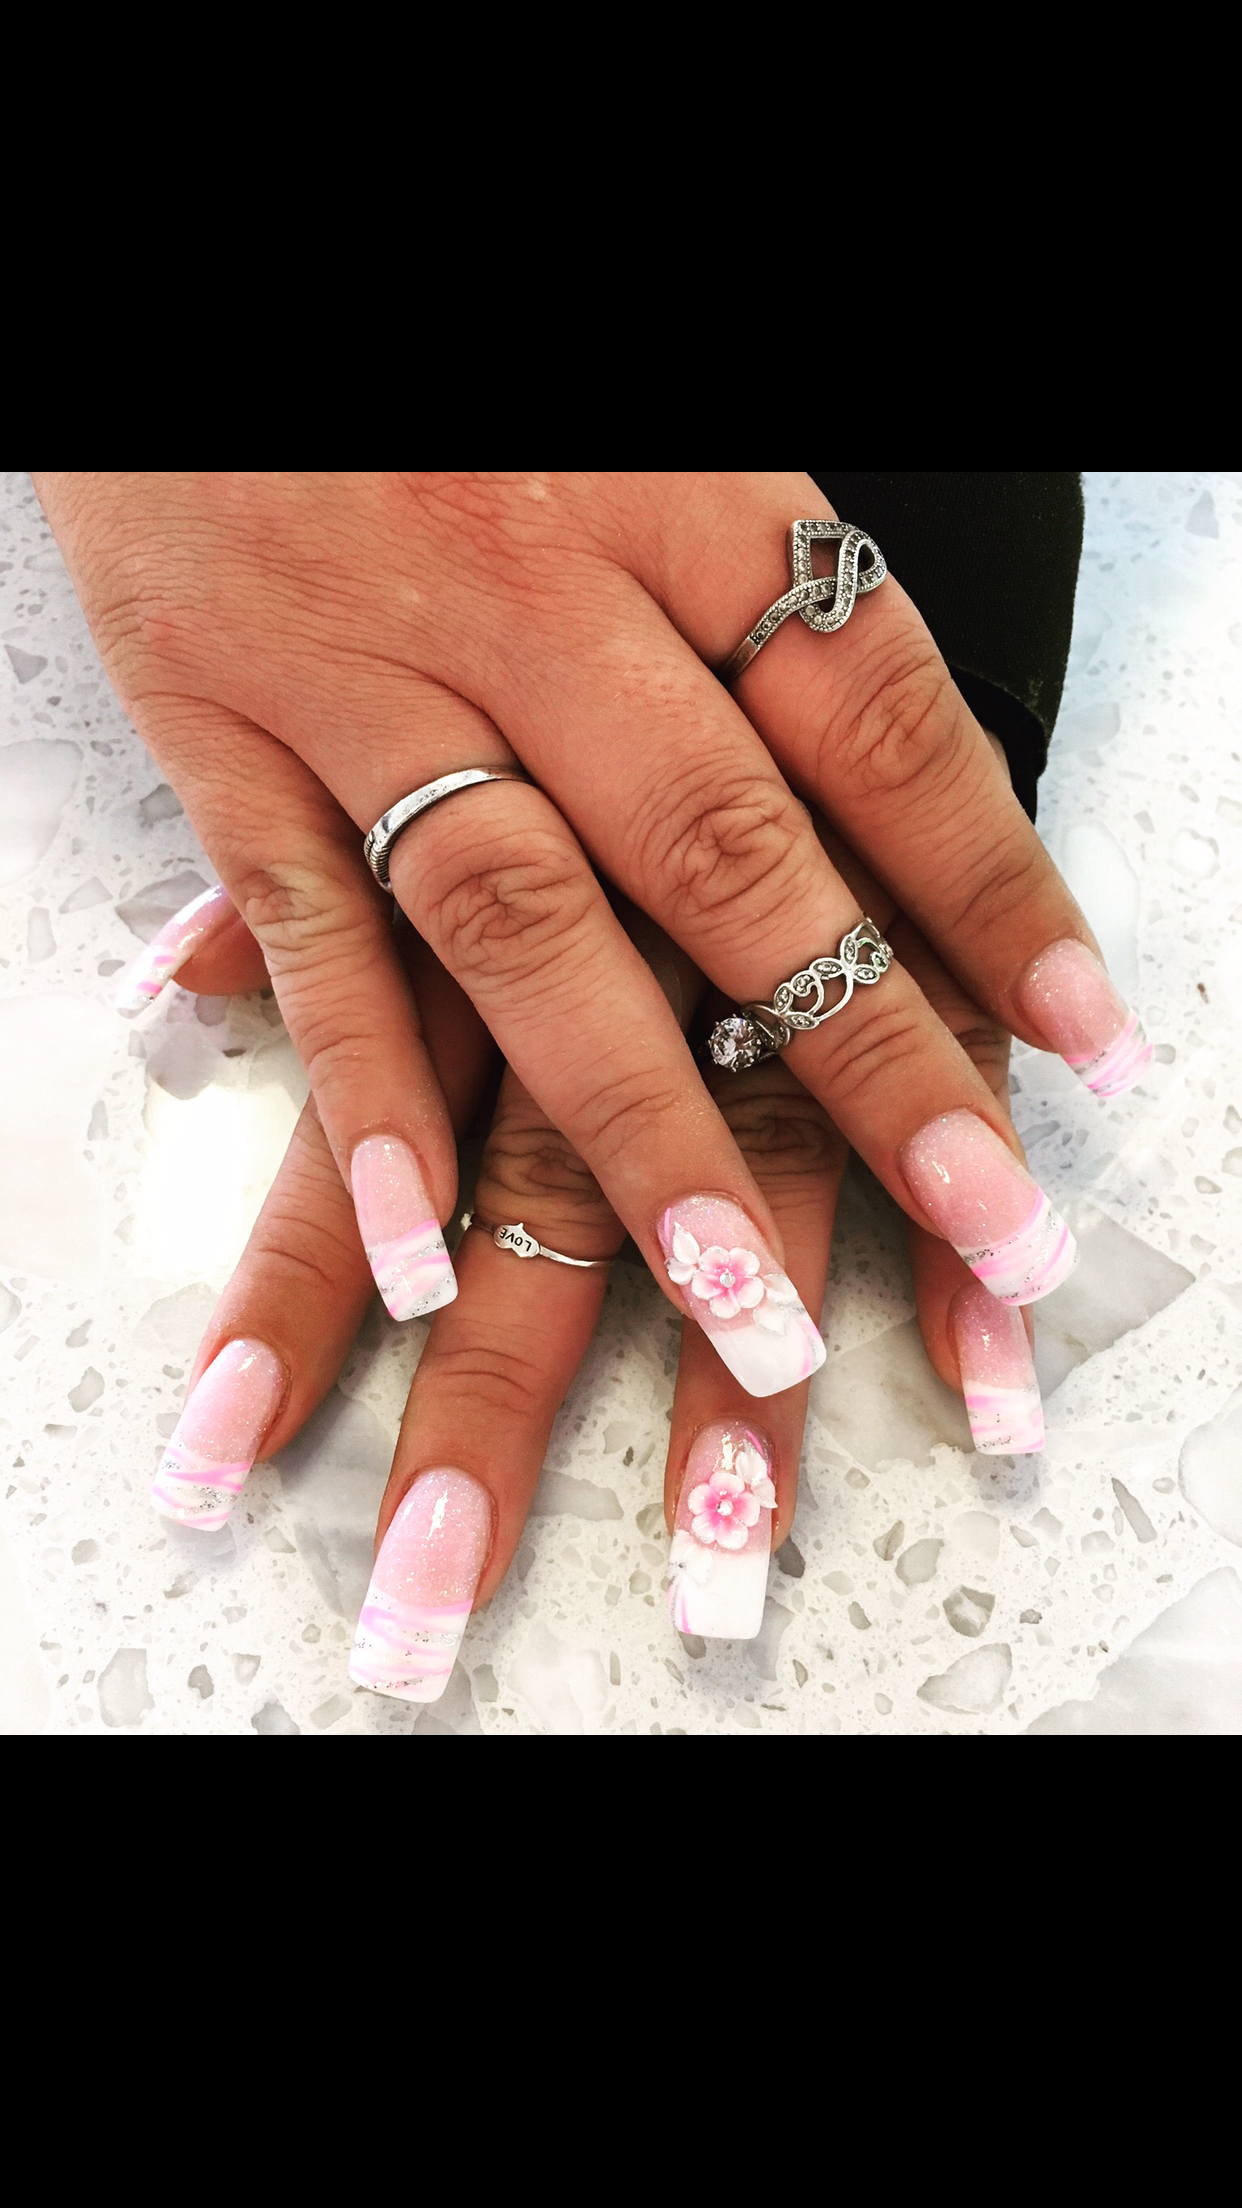 Pink and white glitter 3d flower anc nail design nail art french pink and white glitter 3d flower anc nail design nail art french tip prinsesfo Images